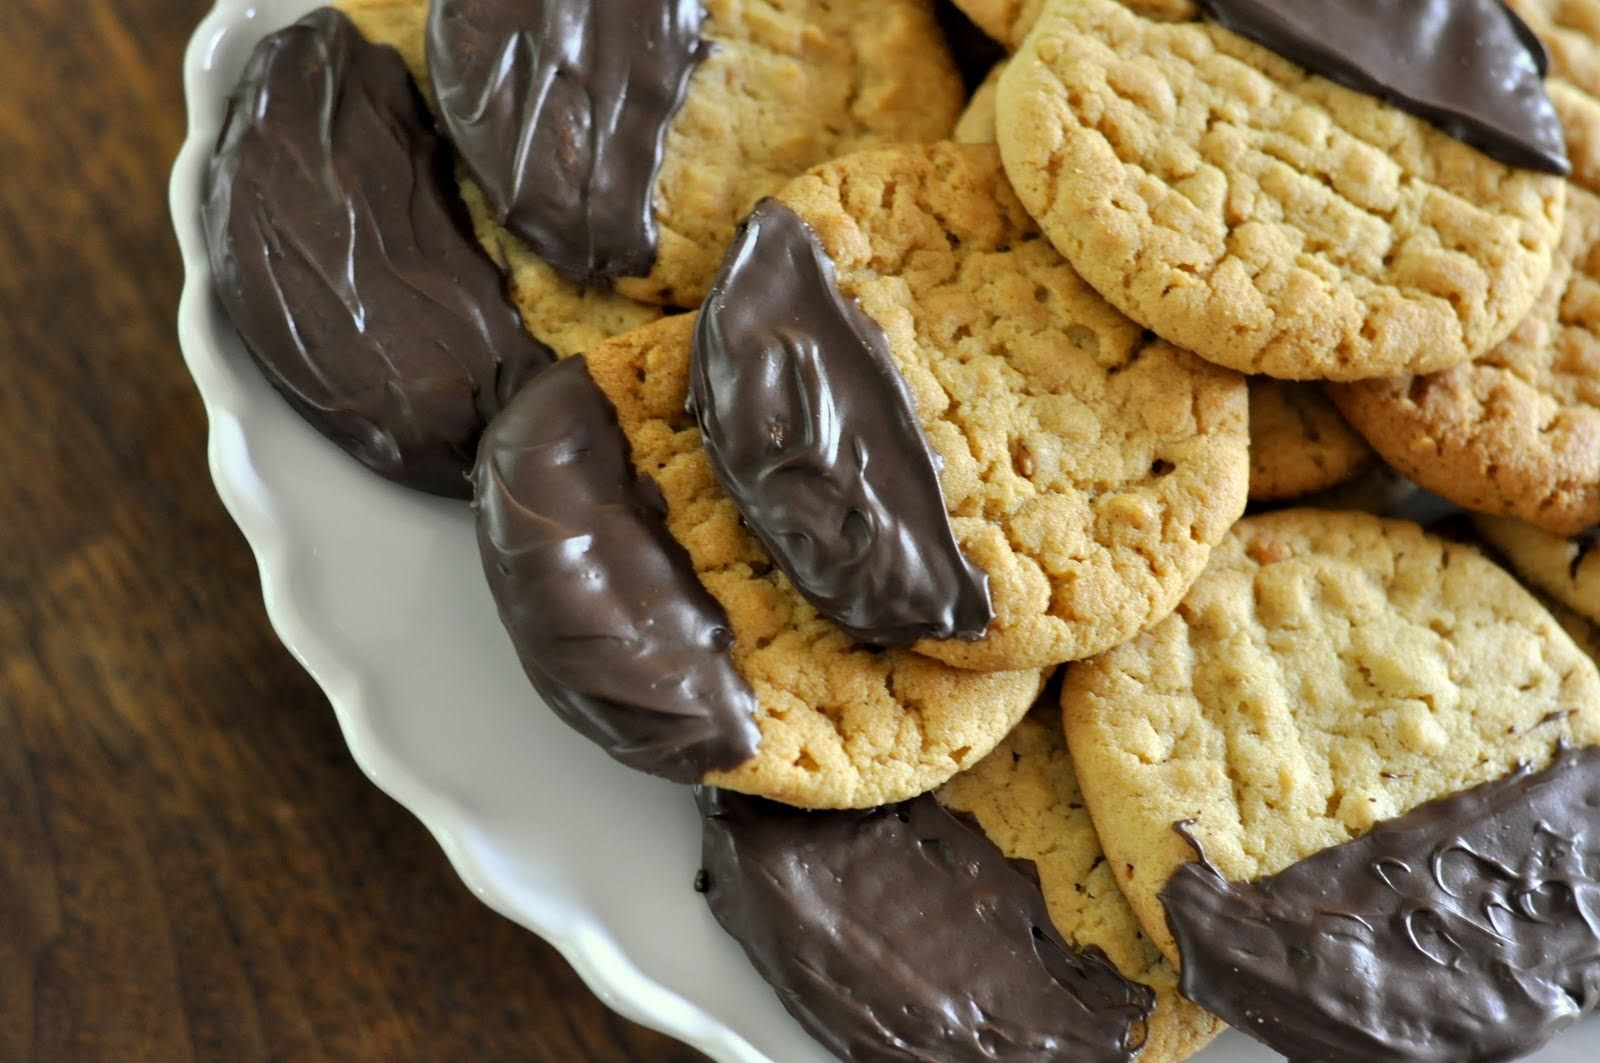 Dark-Chocolate-Dipped-Peanut-Butter-Cookies-tasteasyougo.com